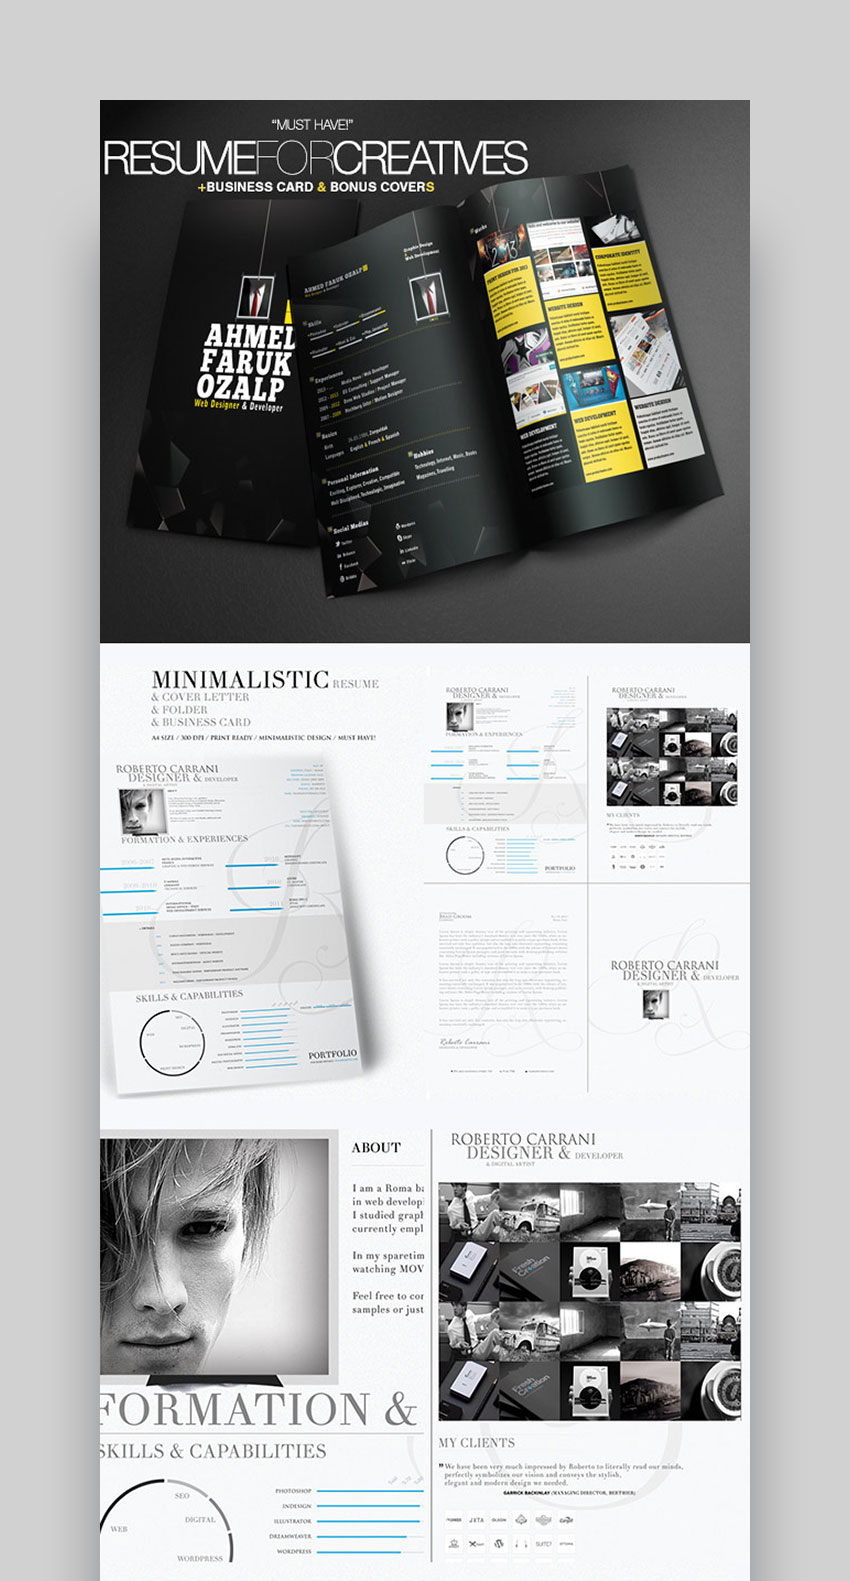 25+ Creative Infographic Resume Templates (Designs for 2019)